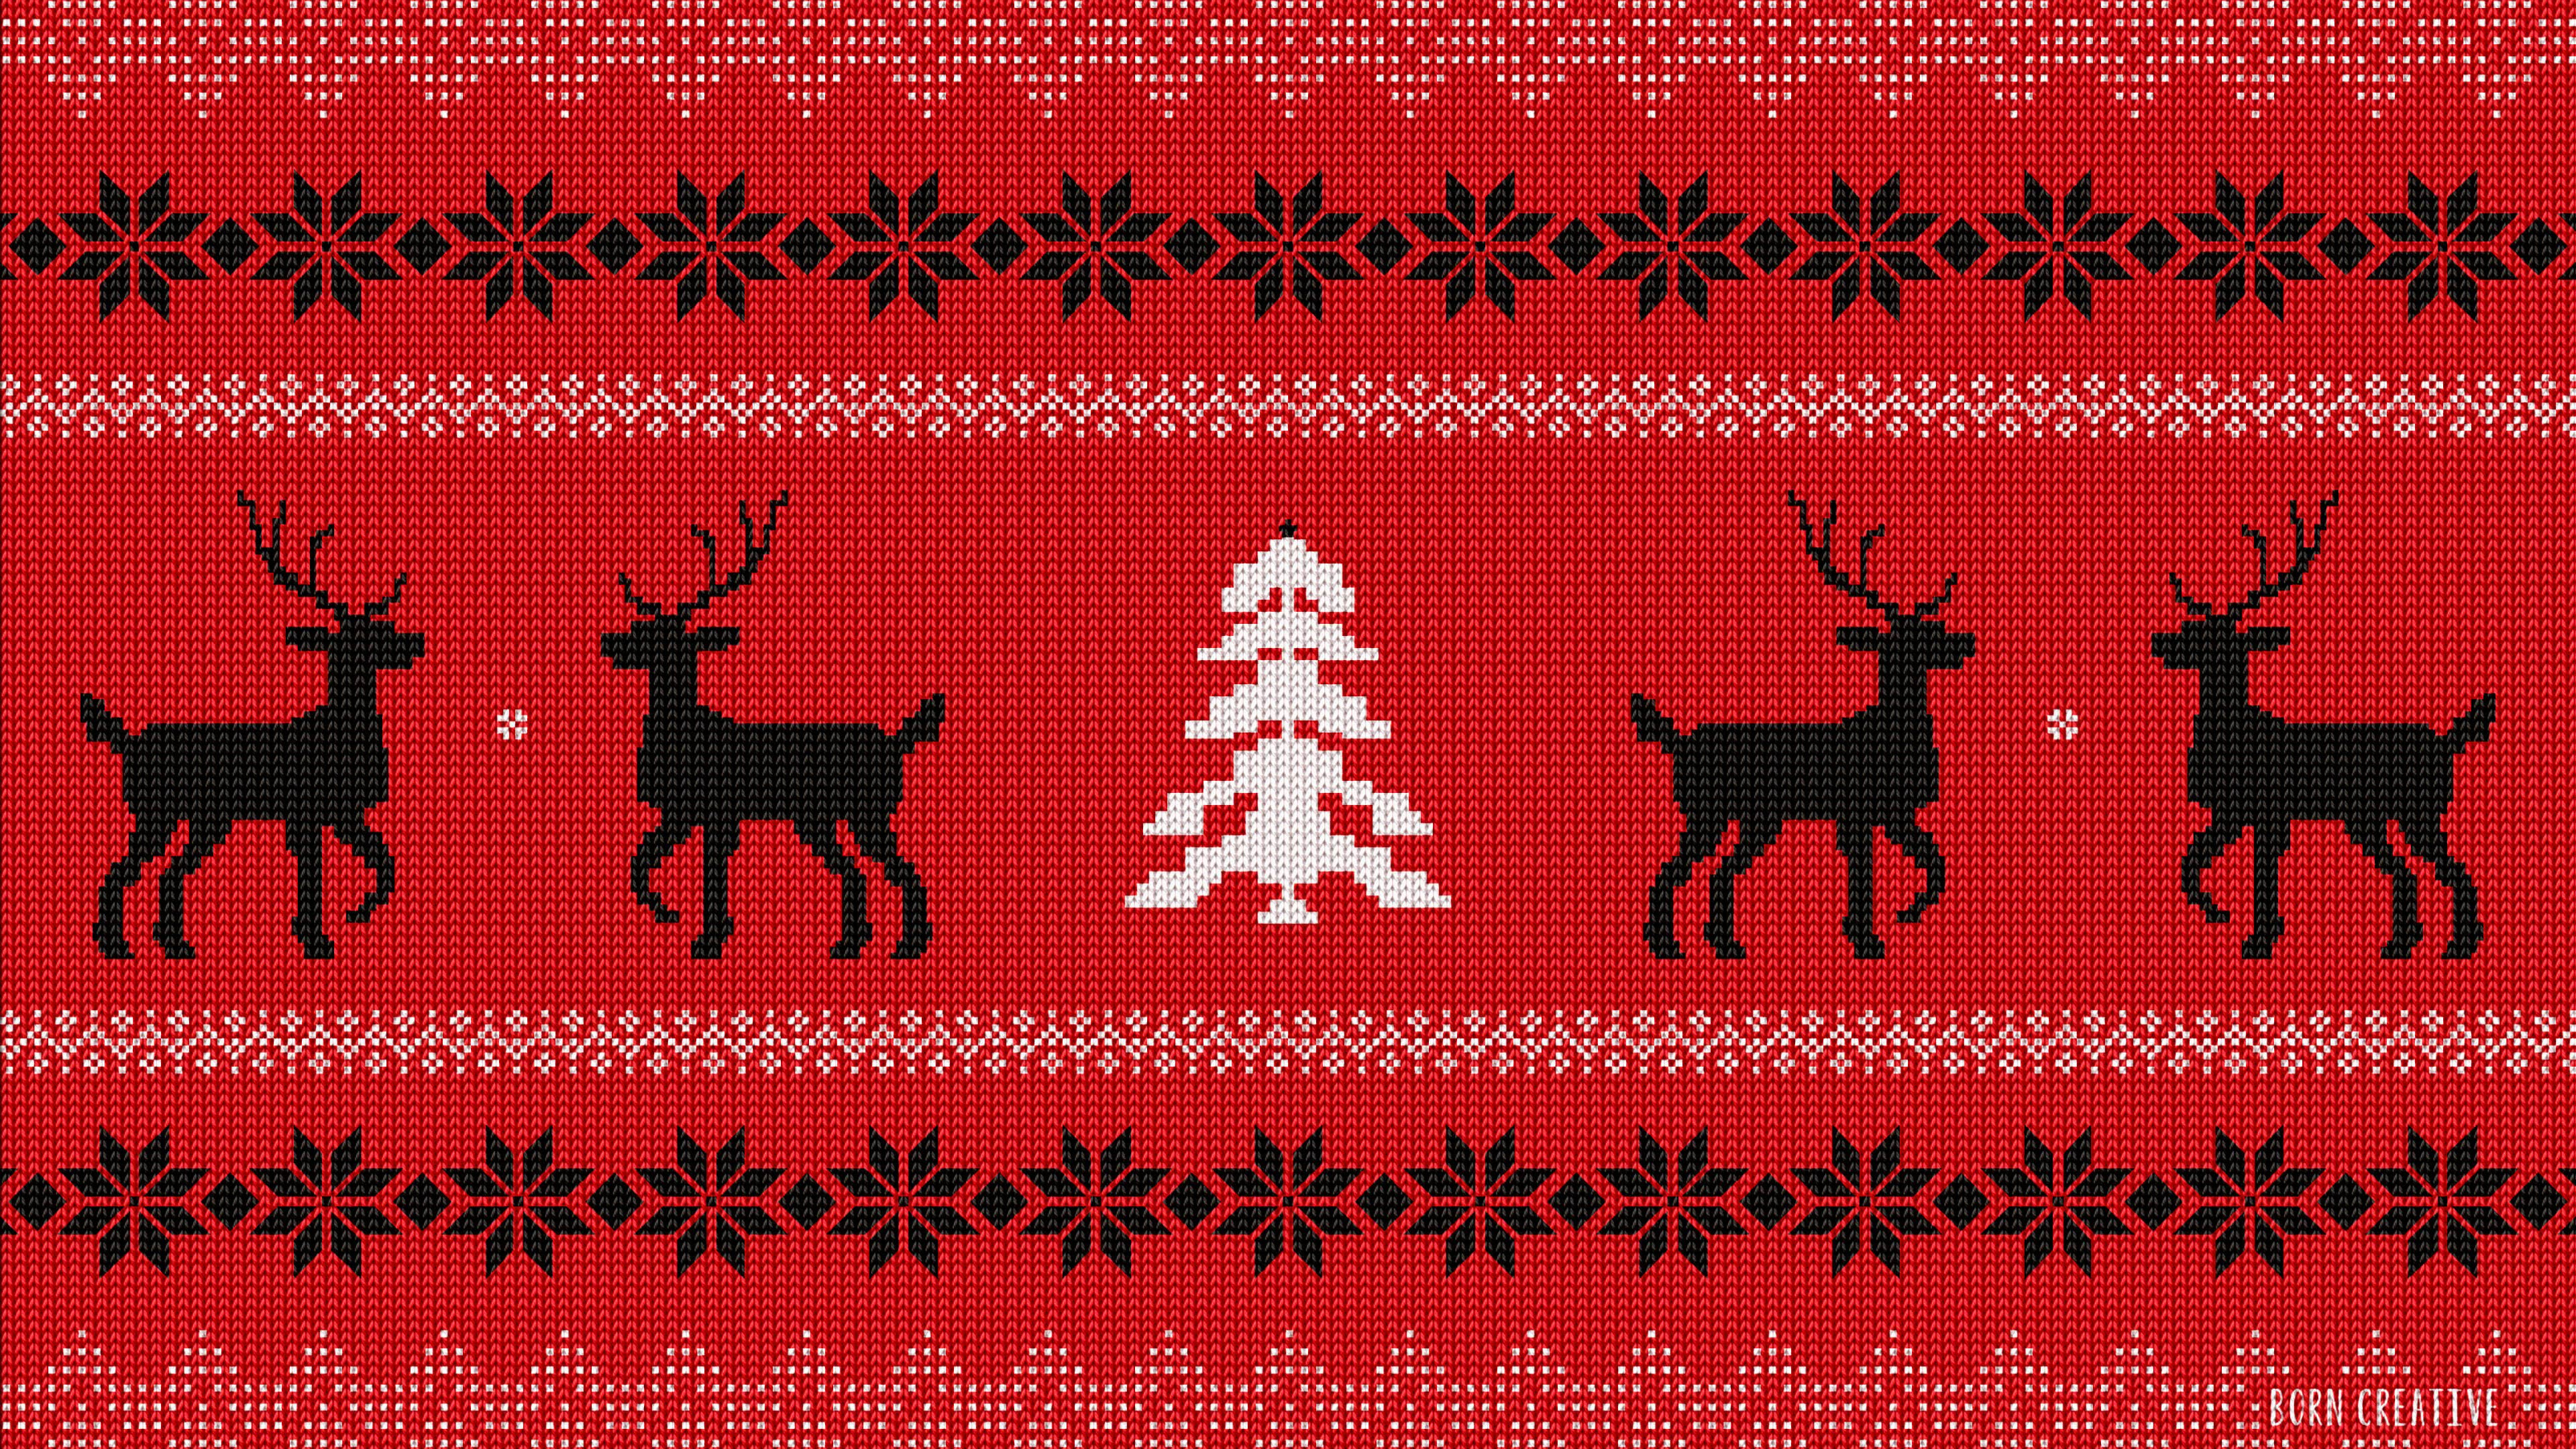 Christmas Sweater Pattern UHD 4K Wallpaper - Pixelz.cc